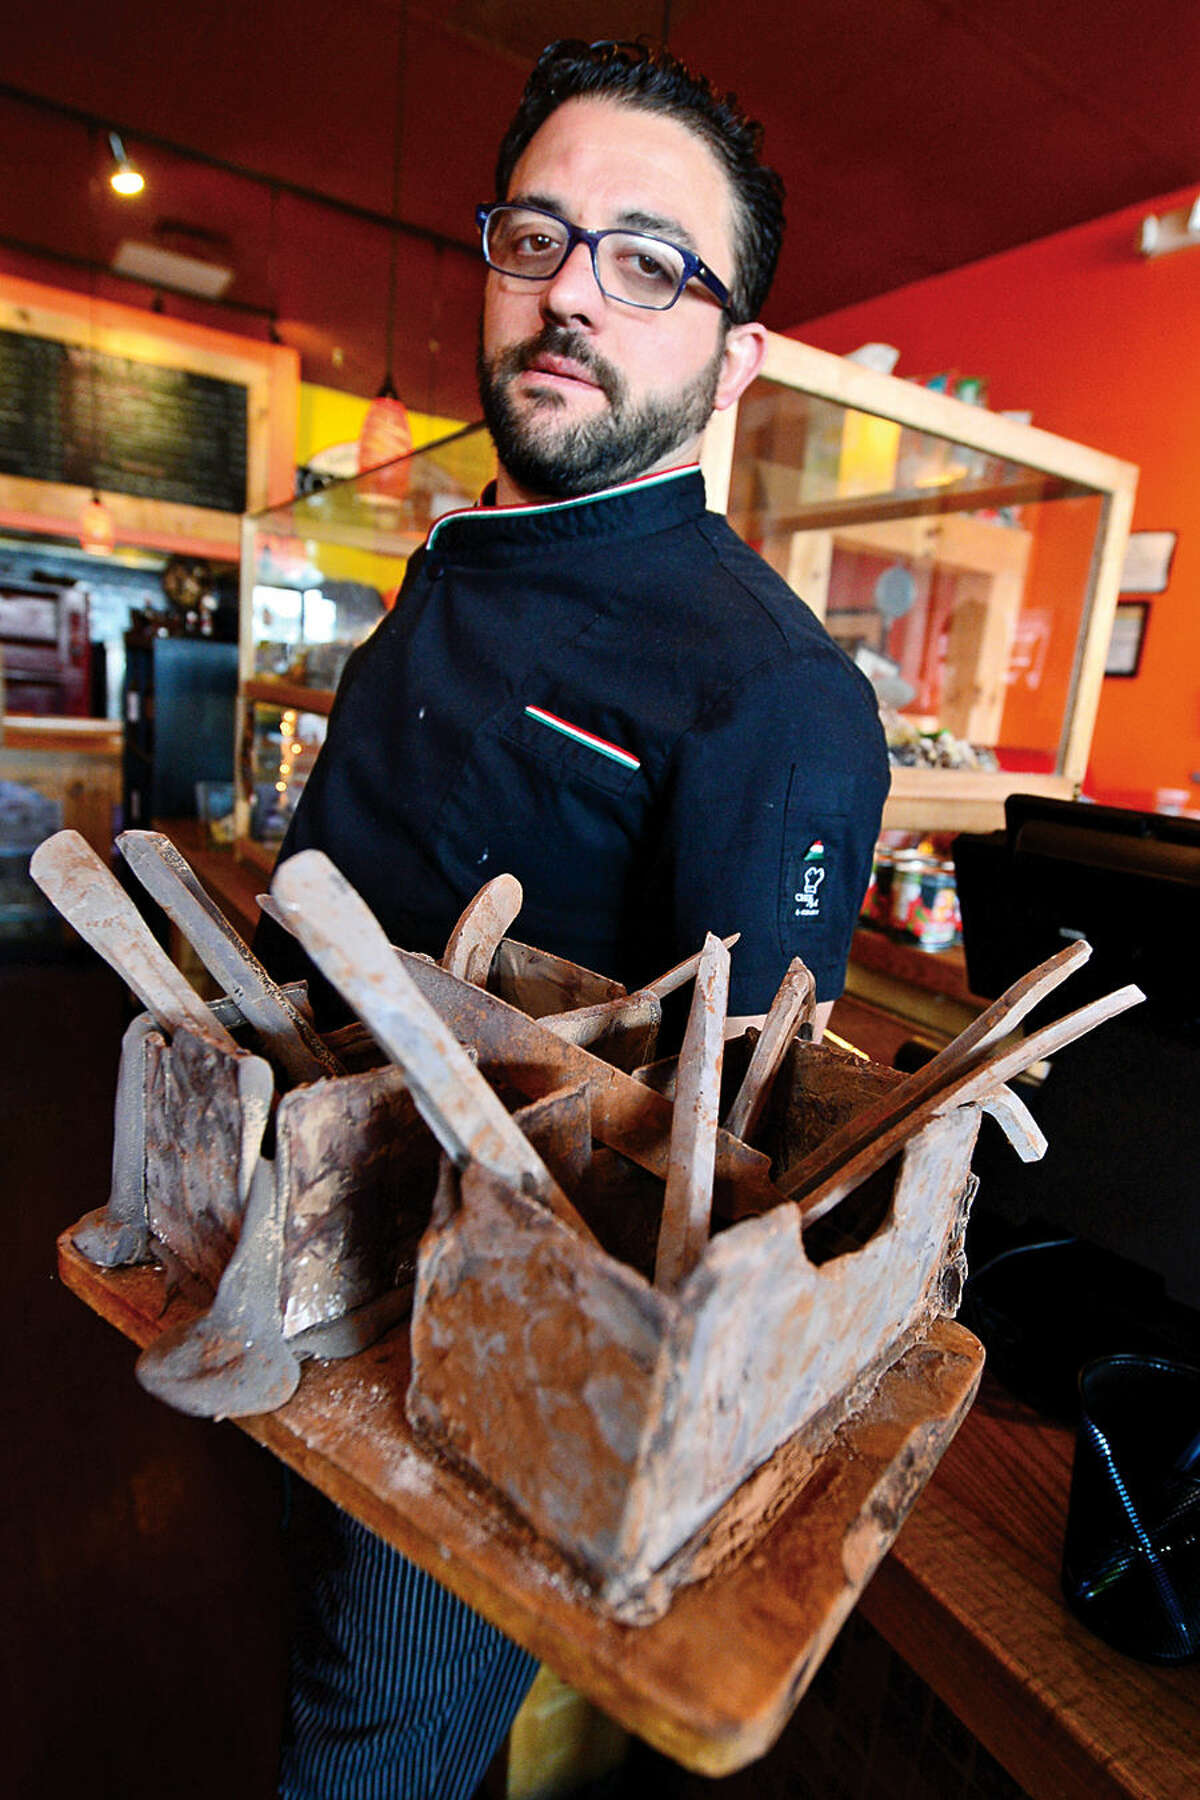 Hour photo / Erik Trautmann Romanacci's pizza restaurant owner, Graziano Ricci, makes hand-crafted chocolate tools, including hammers, wrenches, and bolts, that are a favorite among his customers.